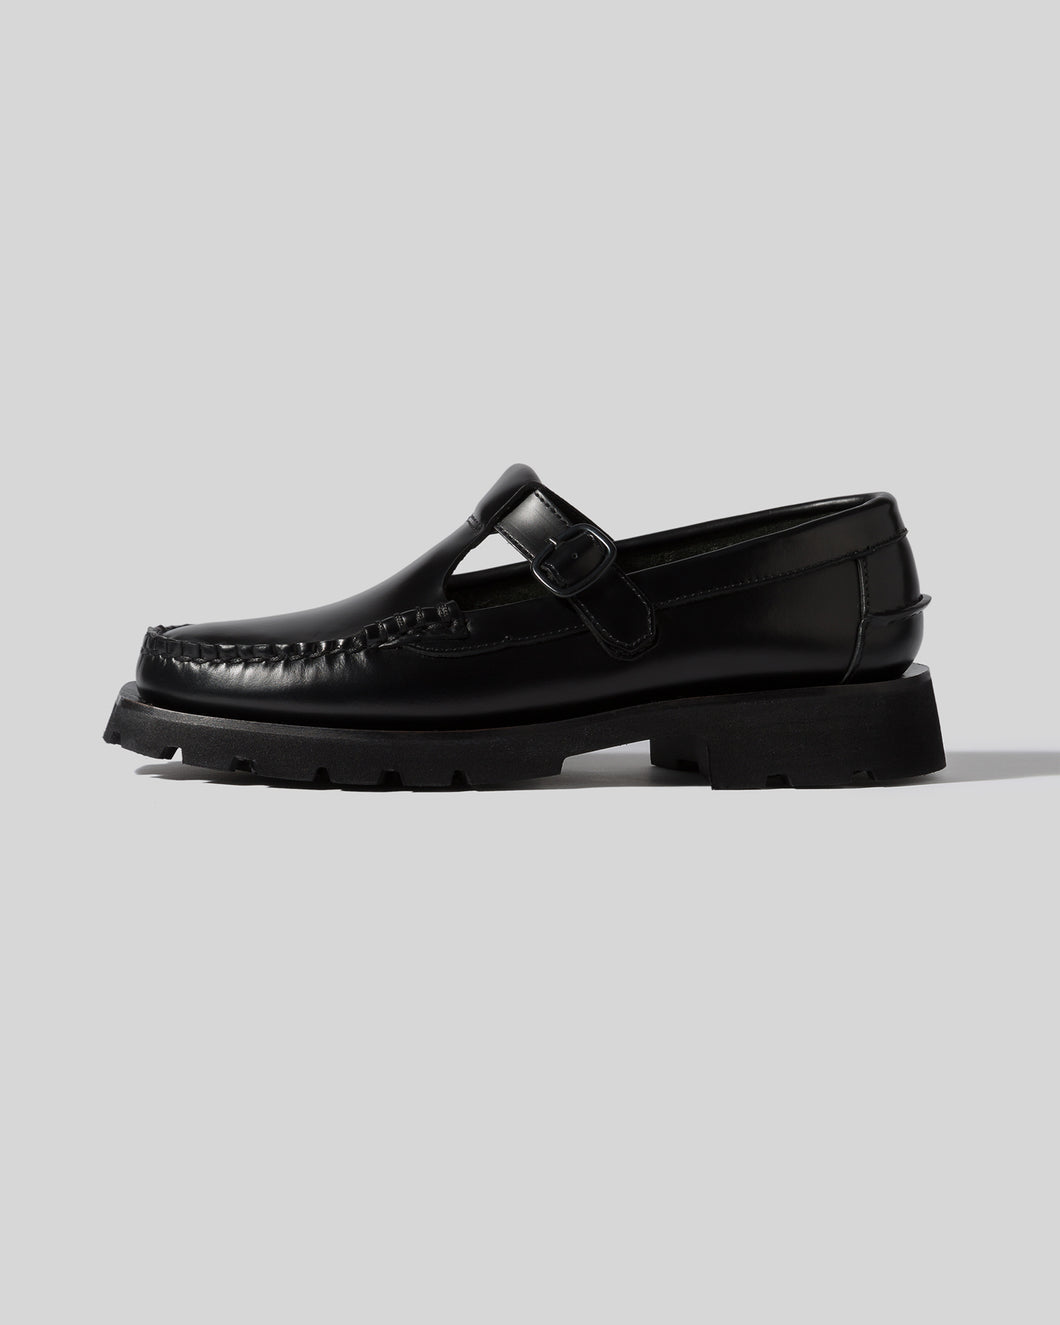 ALBER SPORT - PREORDER - Tread Sole T-Bar Loafer